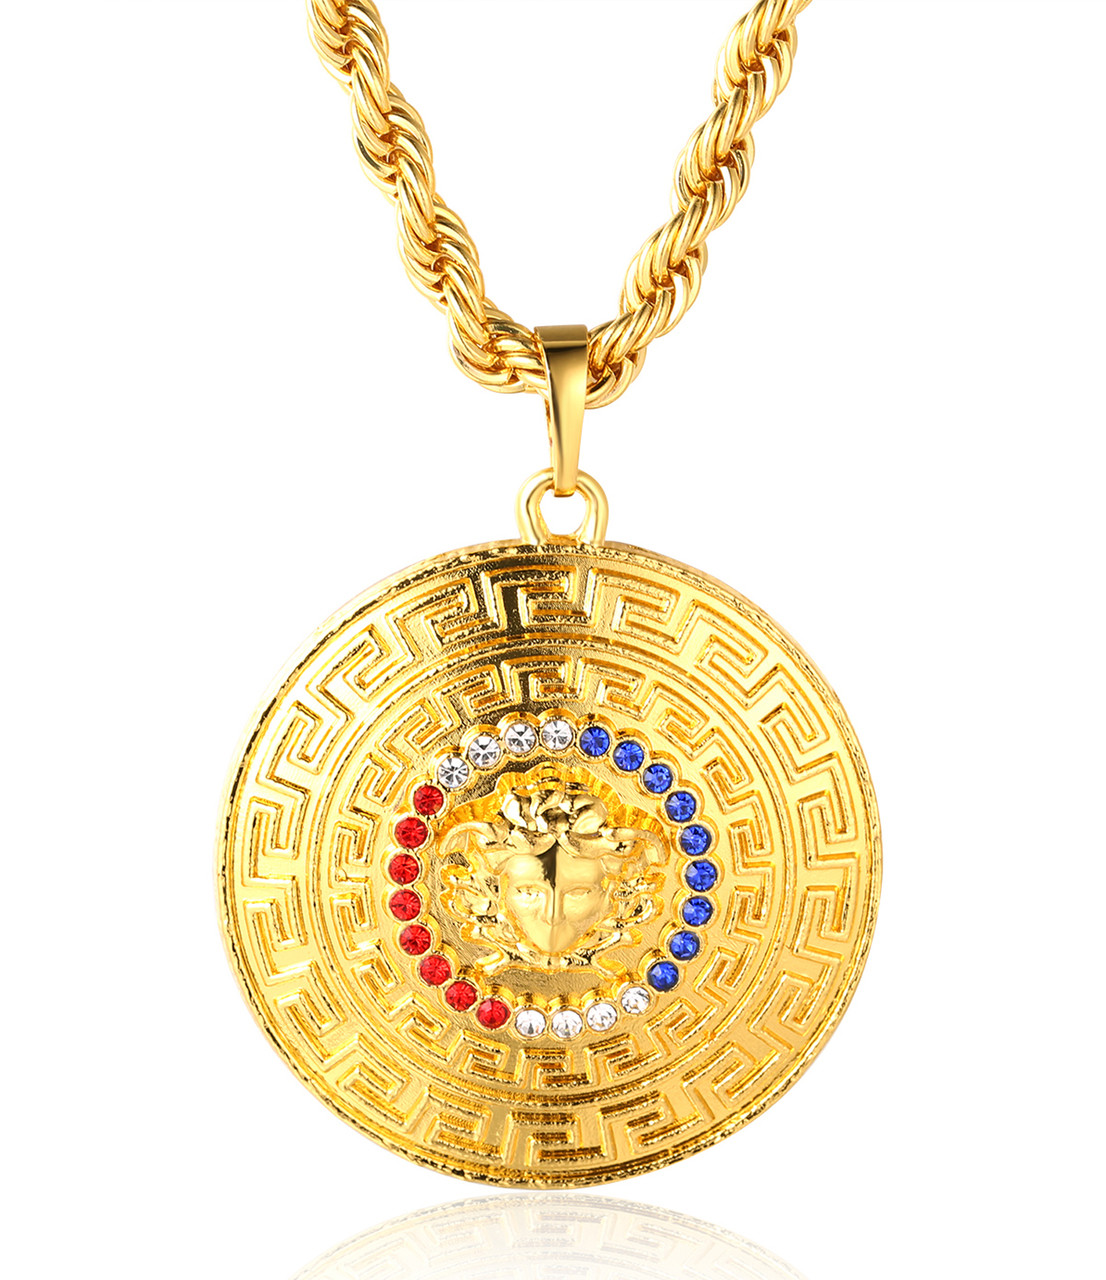 round pendant tradesy gold large necklace paris i chanel m rue medallion cambon dallion big plated